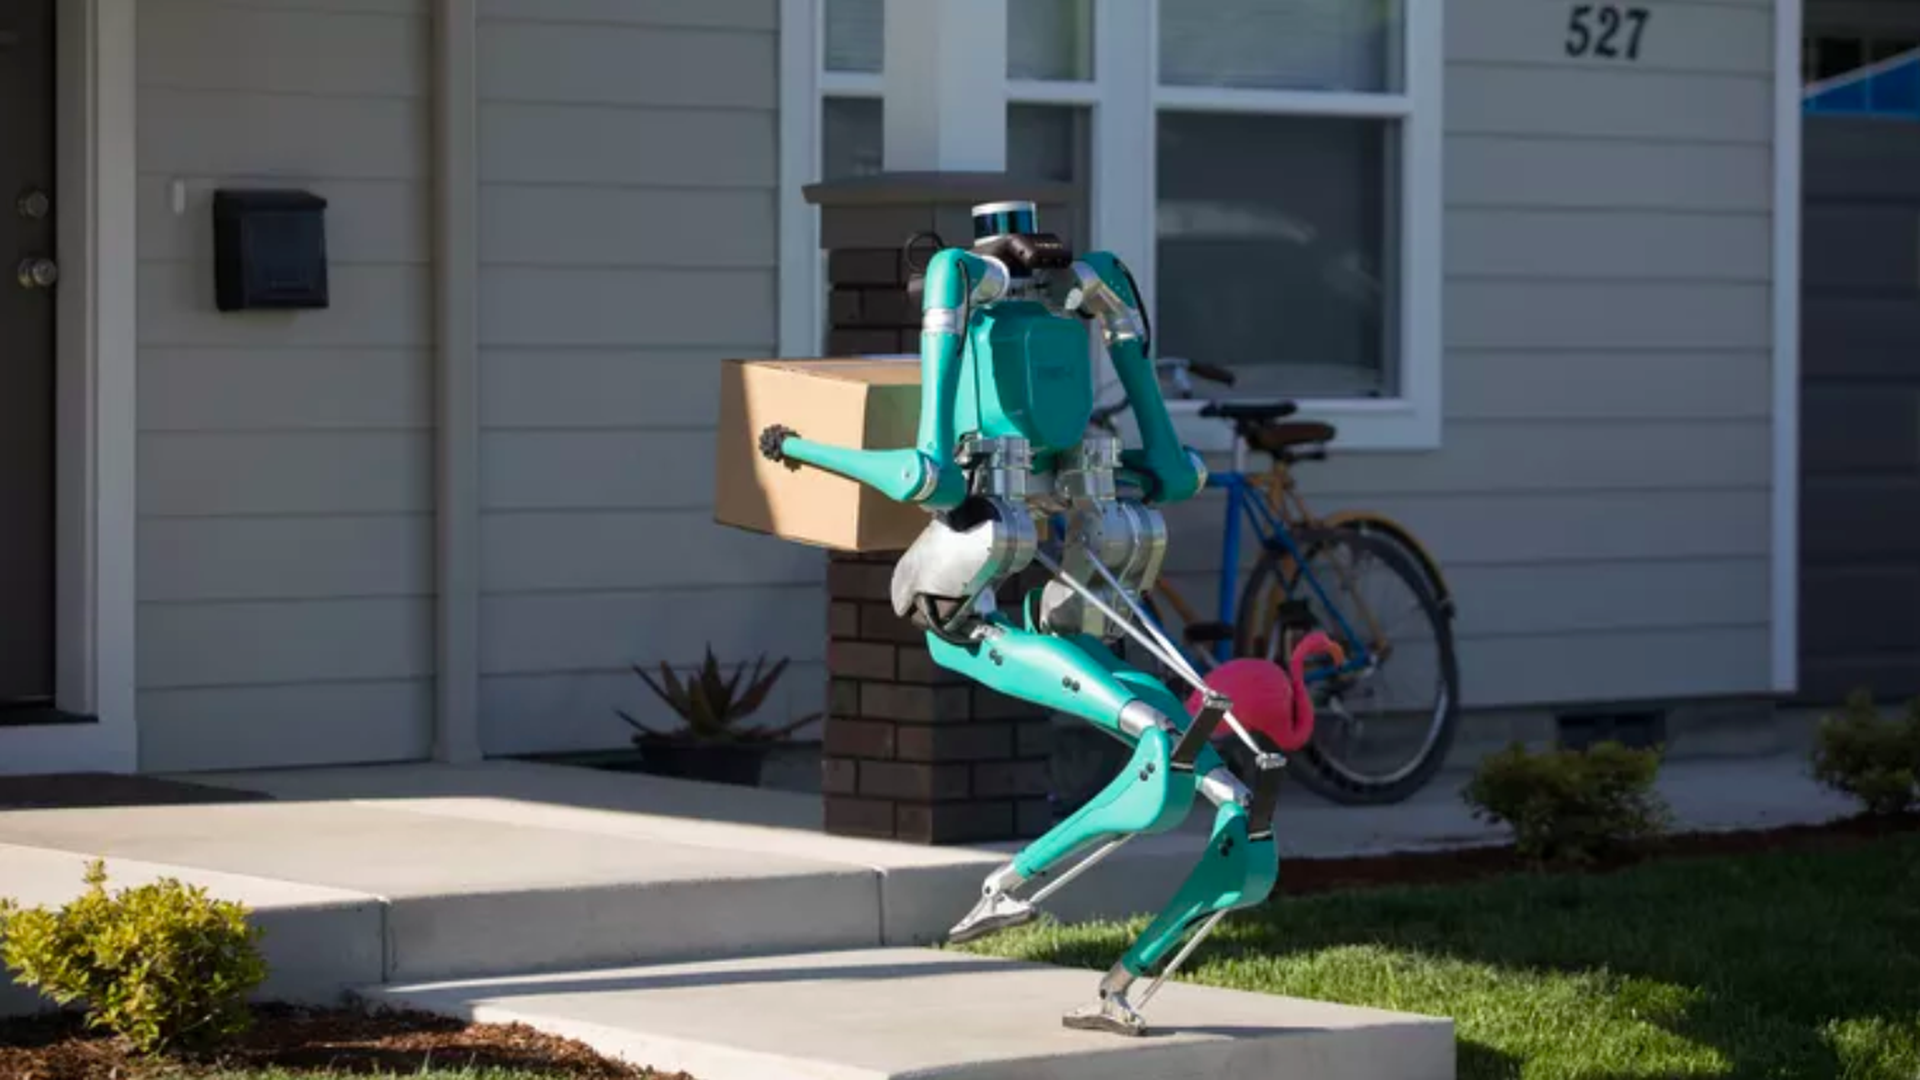 In this image, Digit delivers a package on someone's front porch.